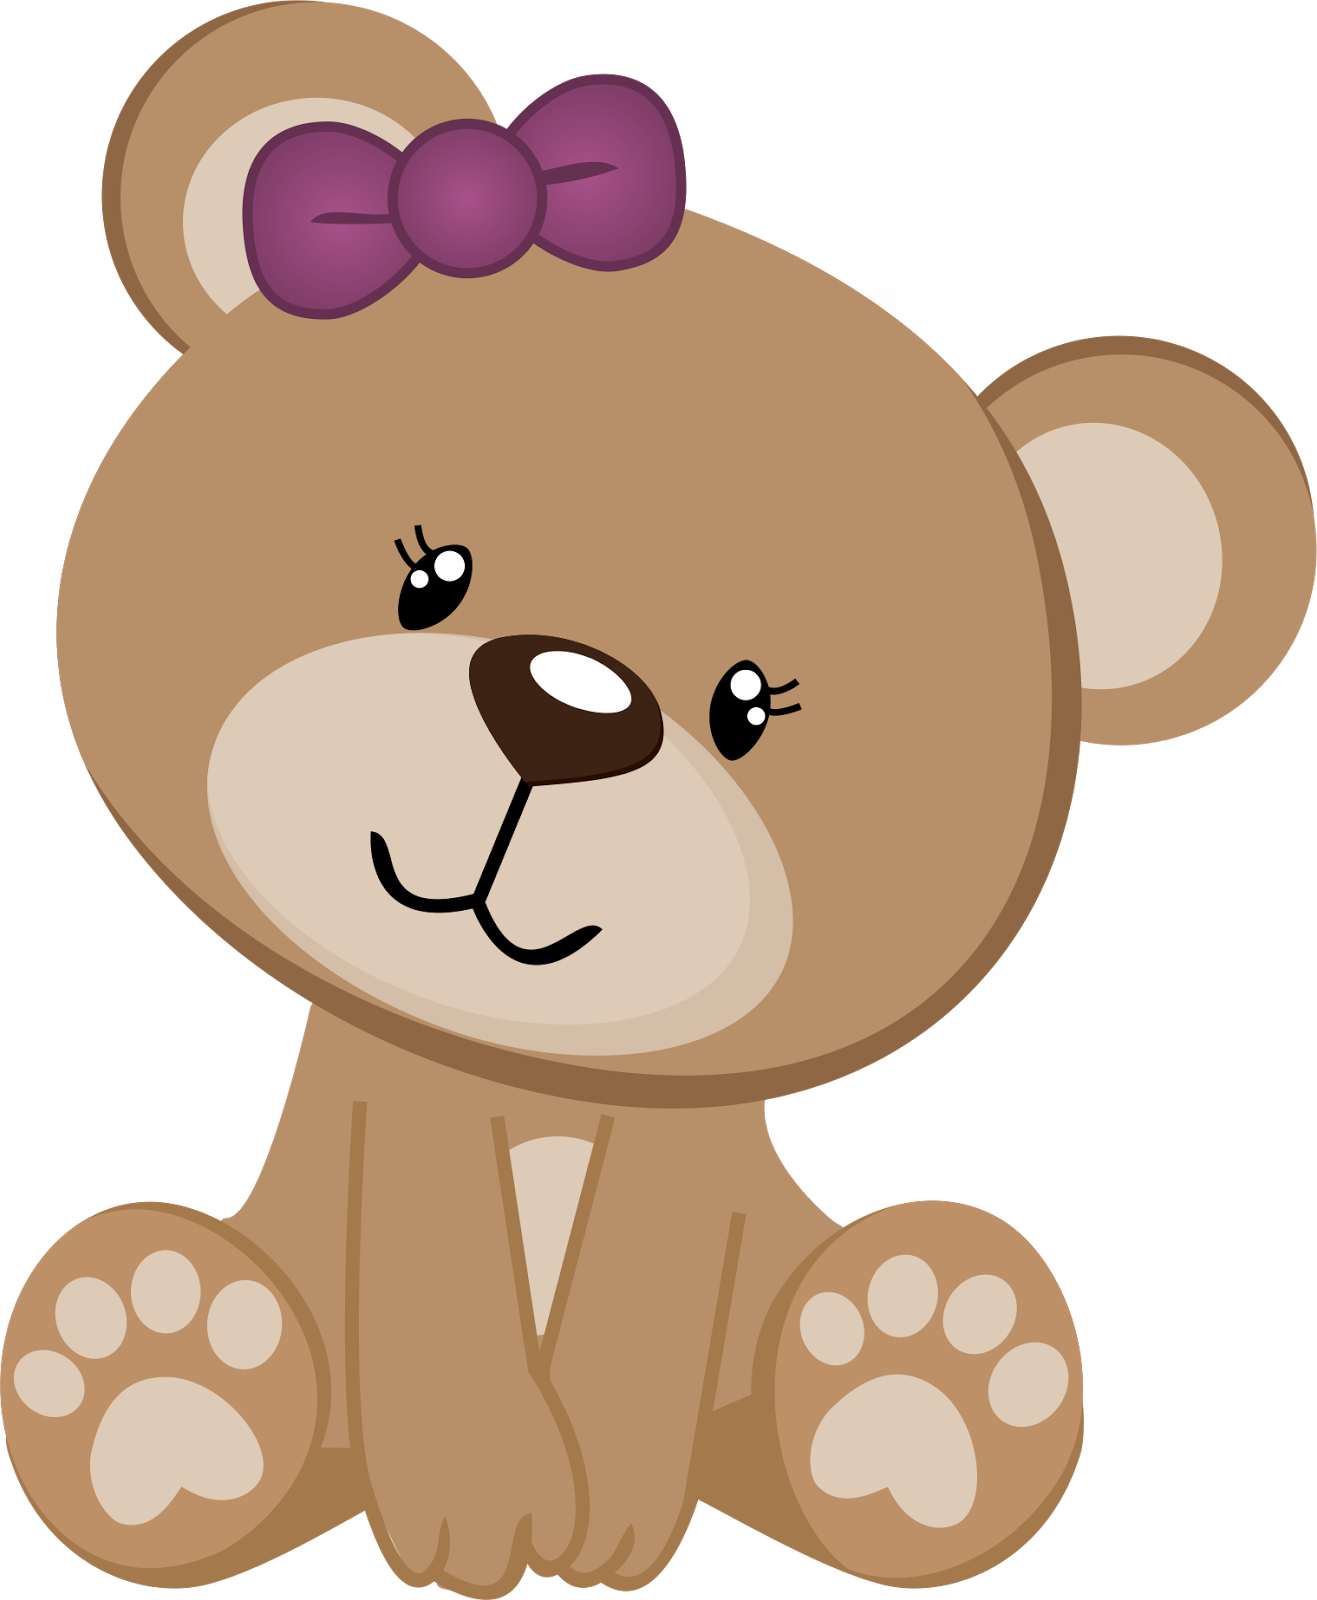 Coisas da laiz png. Nautical clipart teddy bear